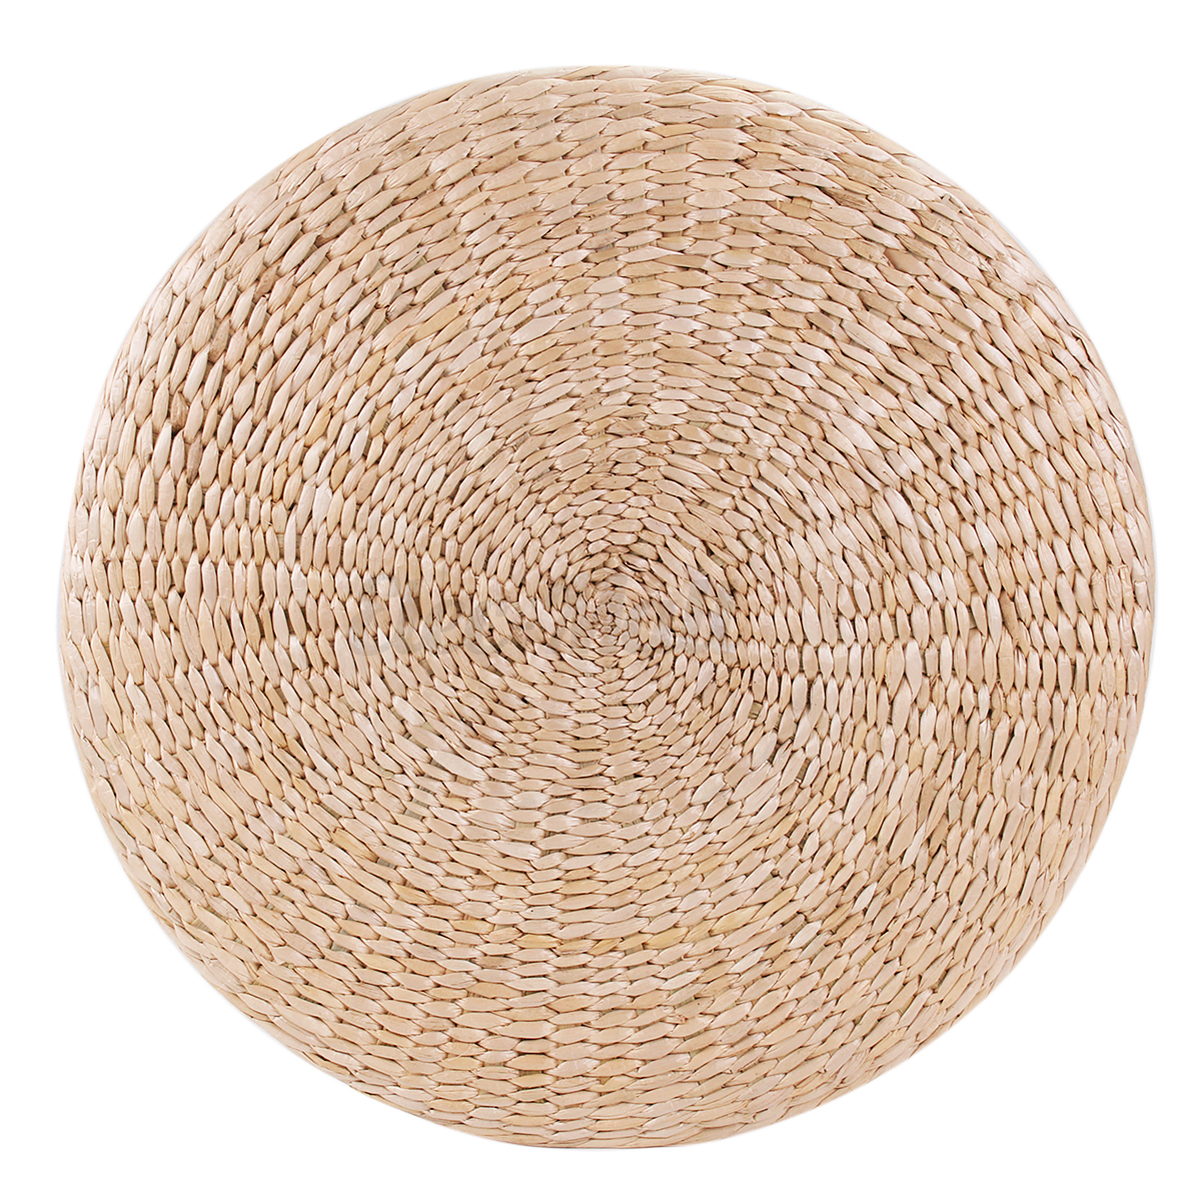 Round Straw Floor Pillows : 45cm Round Pouf Tatami Cushion Floor Cushions Natural Straw Meditation Yoga Mat eBay